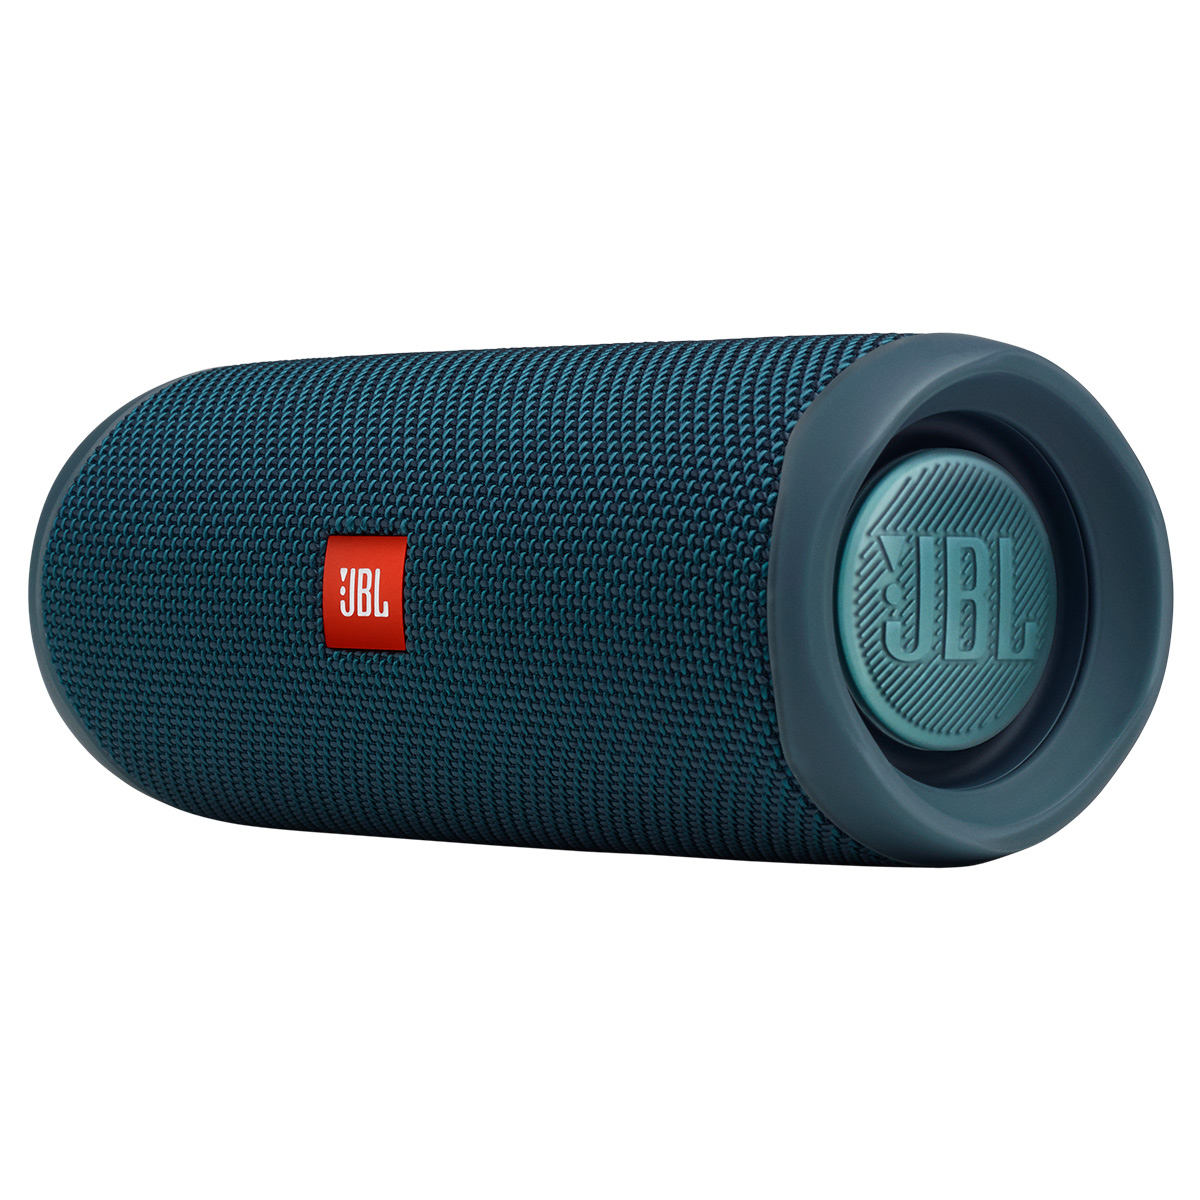 JBL-Flip-5-Portable-Waterproof-Bluetooth-Speaker thumbnail 12